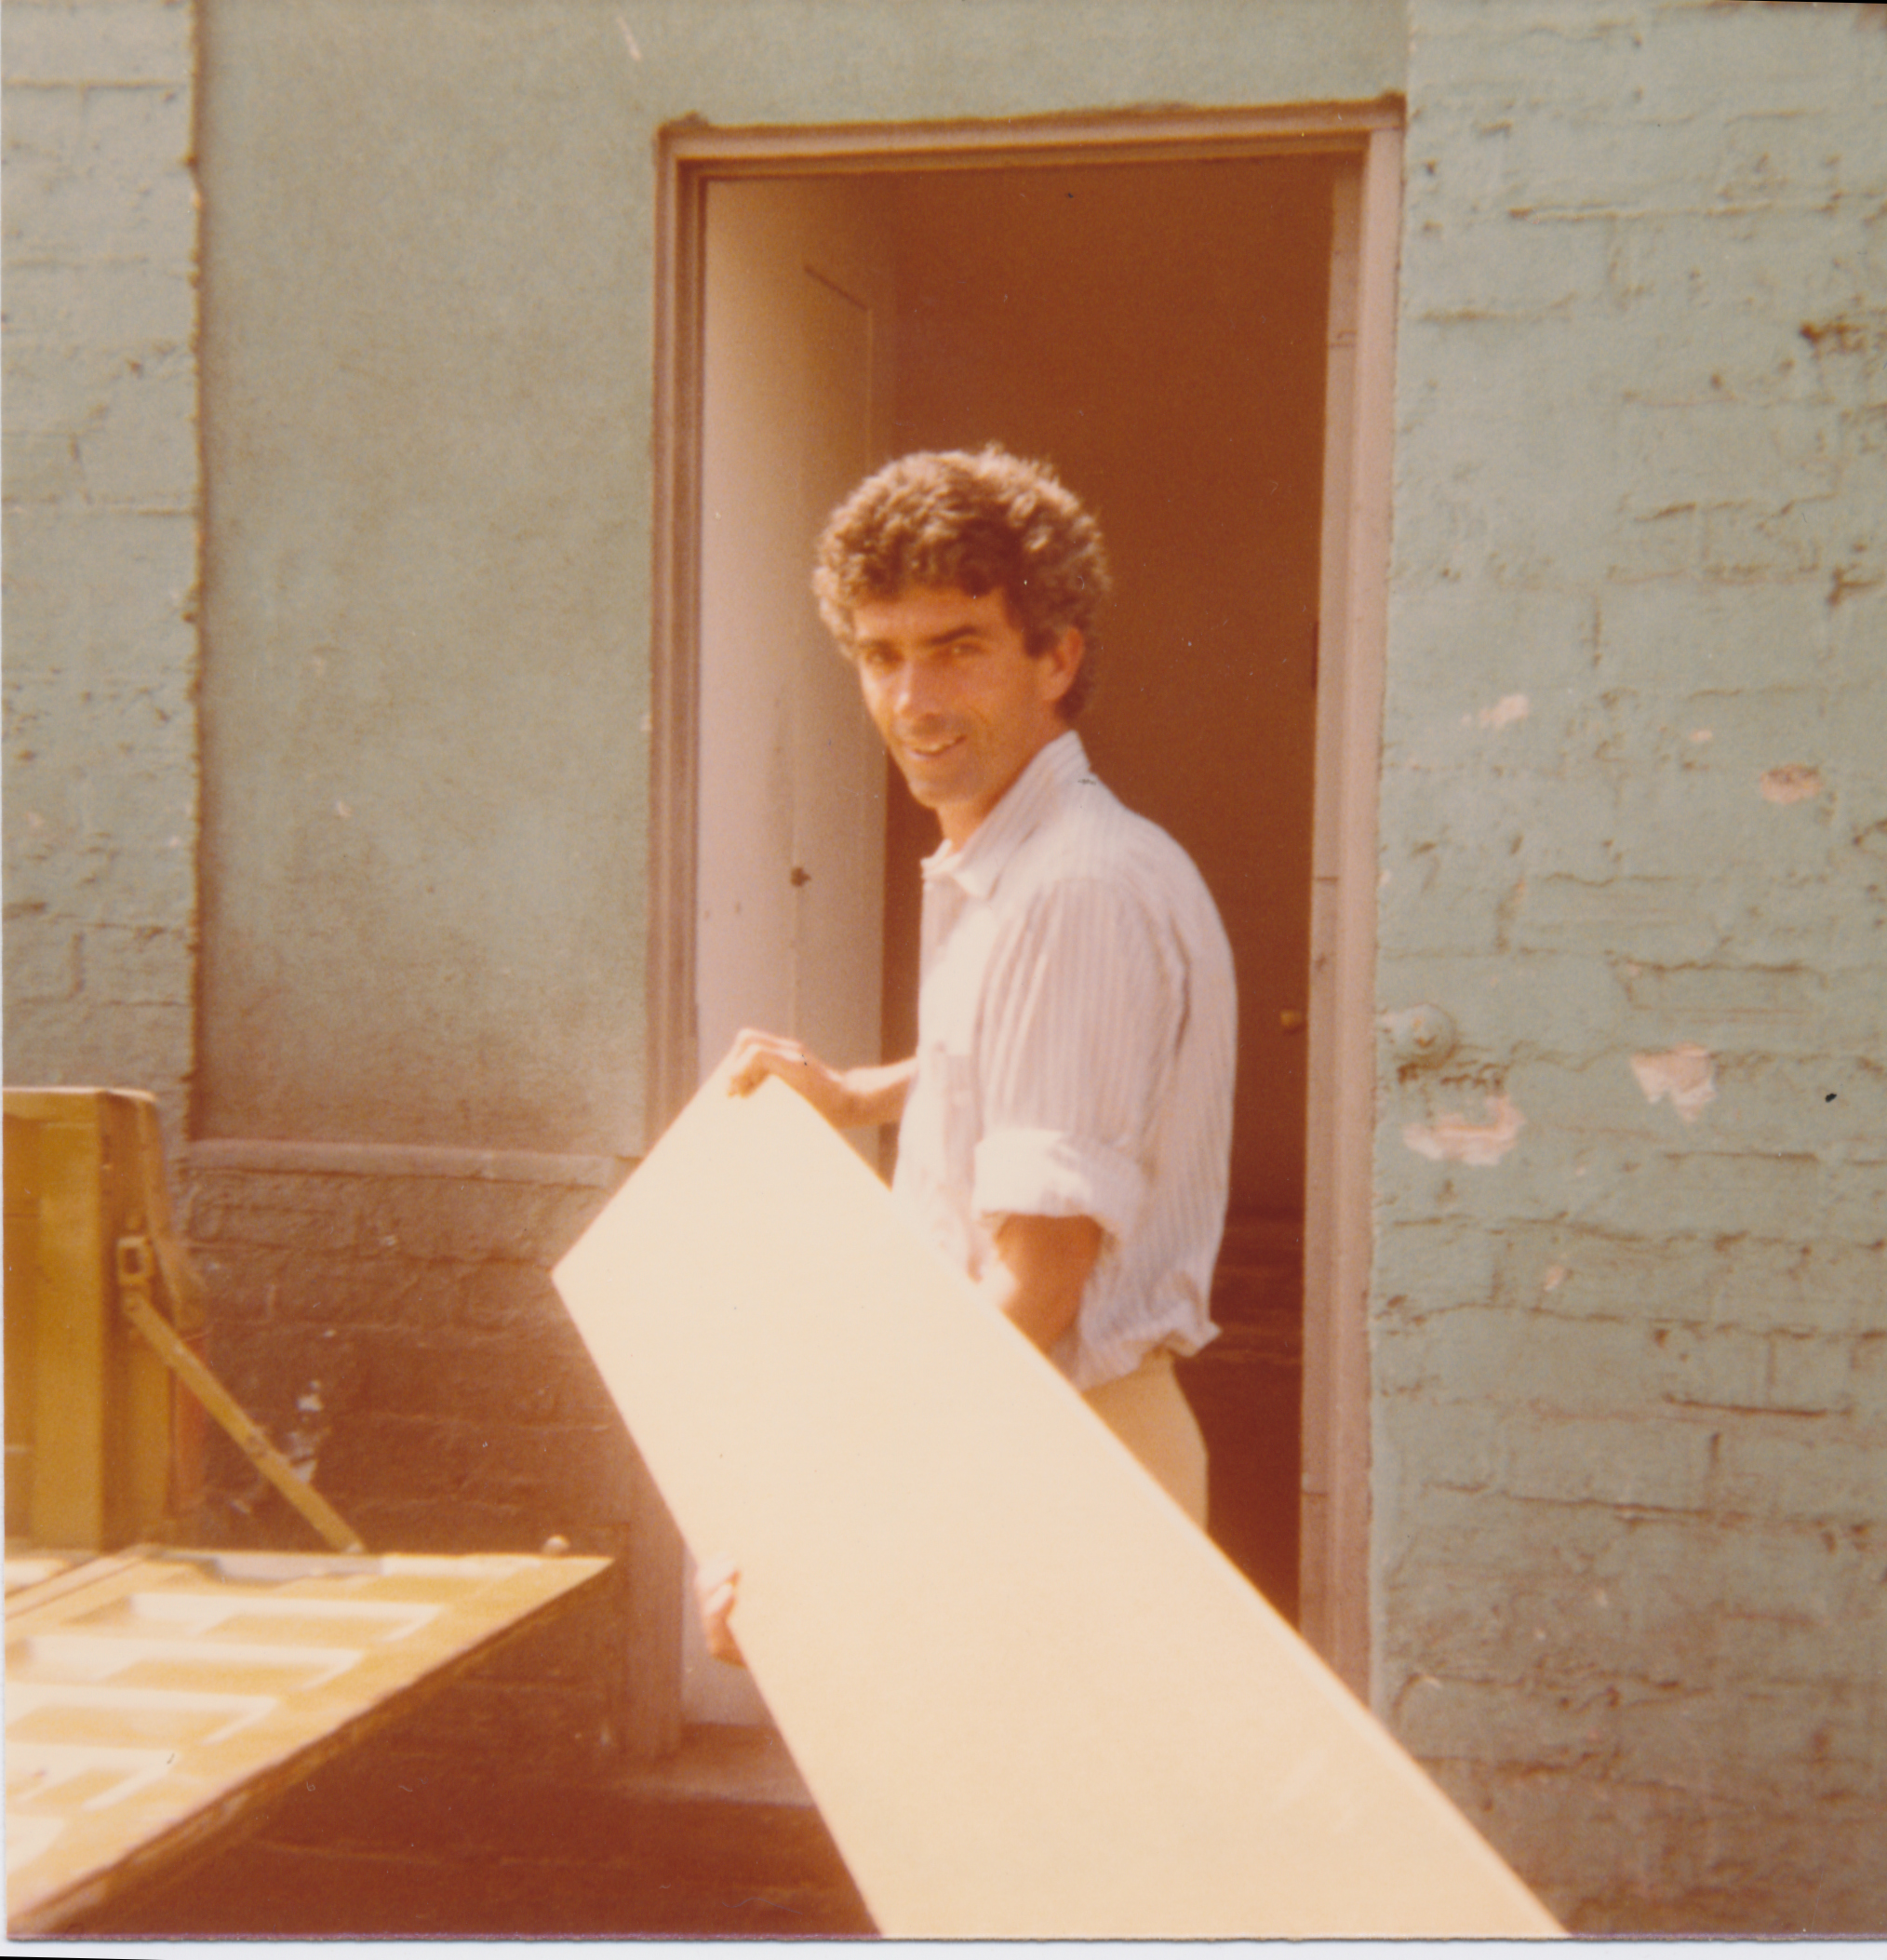 Peter Alexander with resin works in his Westminster studio, circa mid-70s. Image courtesy of Joan Agajanian Quinn